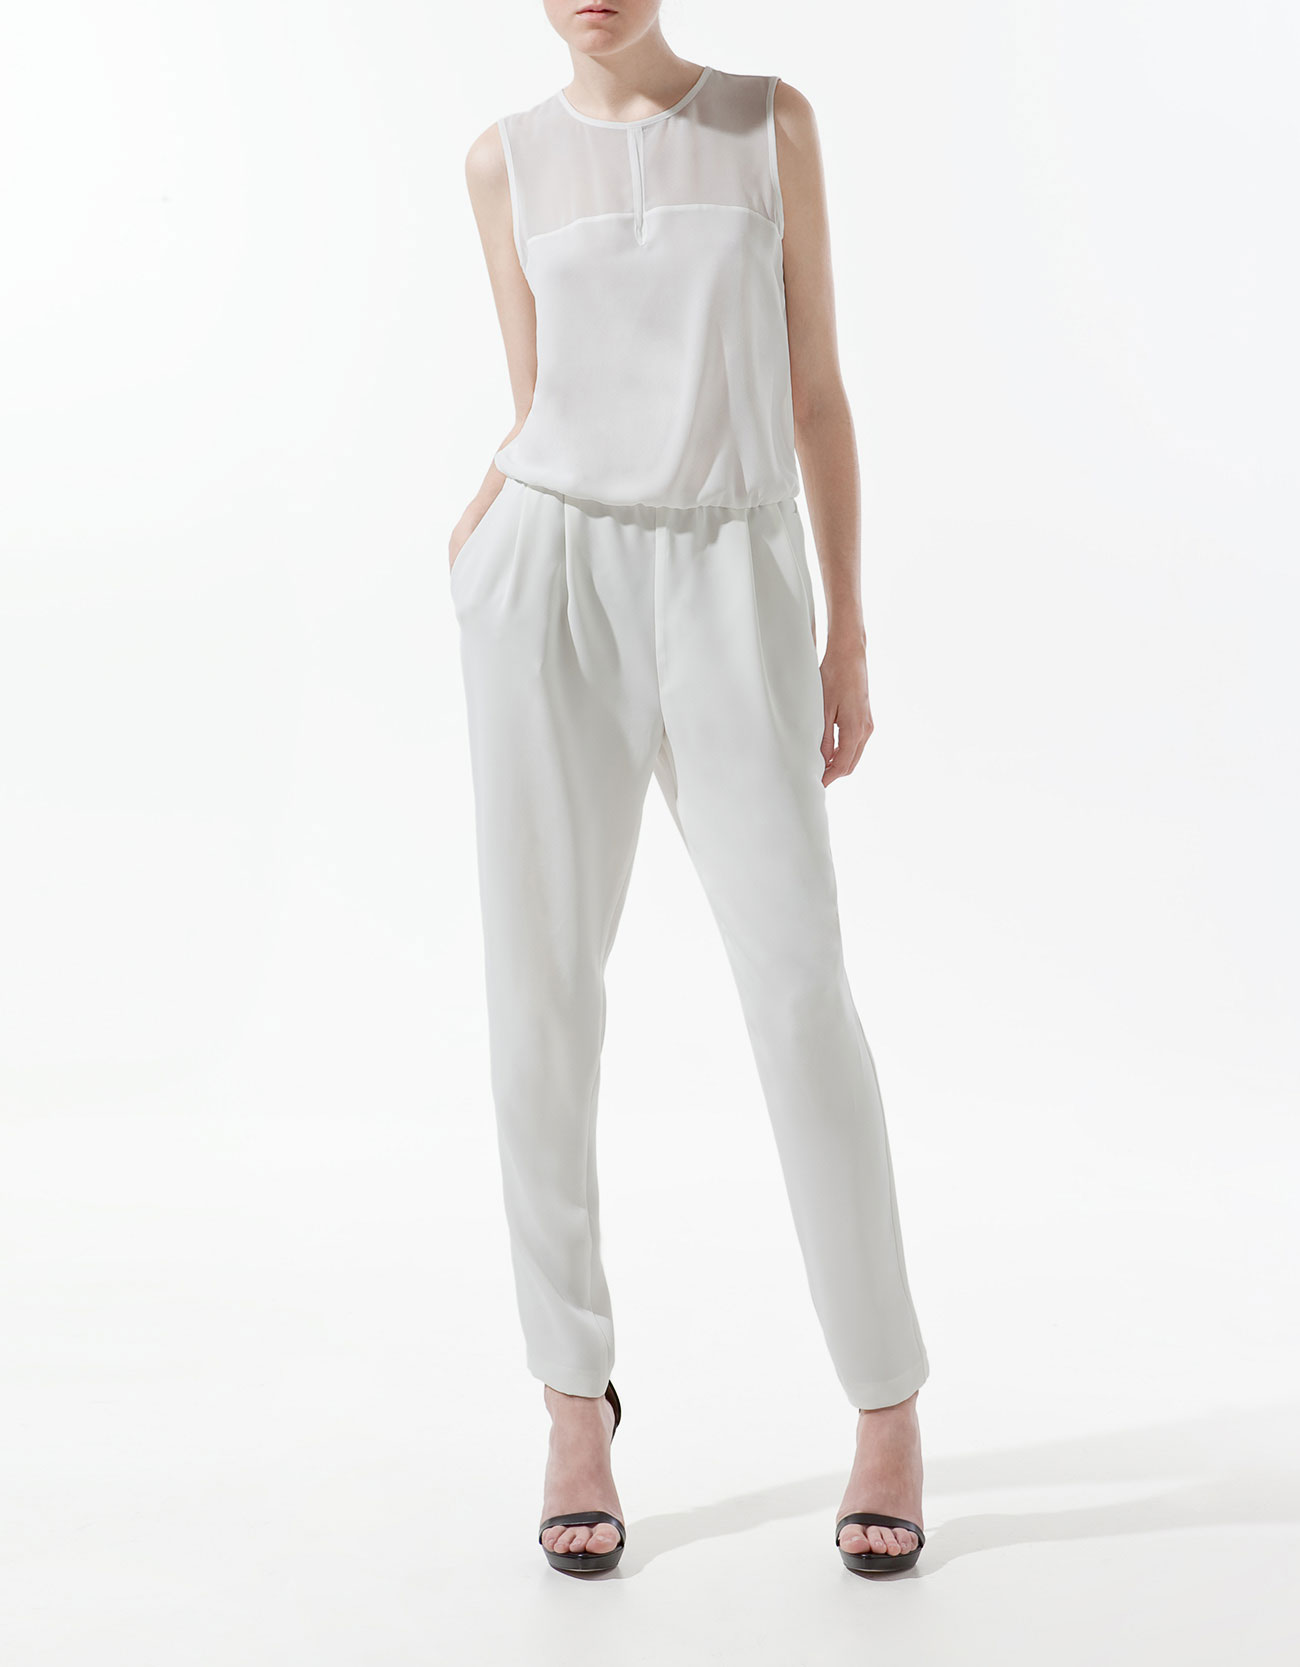 0e4208d96c5 21 Fantastic Womens All White Jumpsuits U2013 Playzoa.com